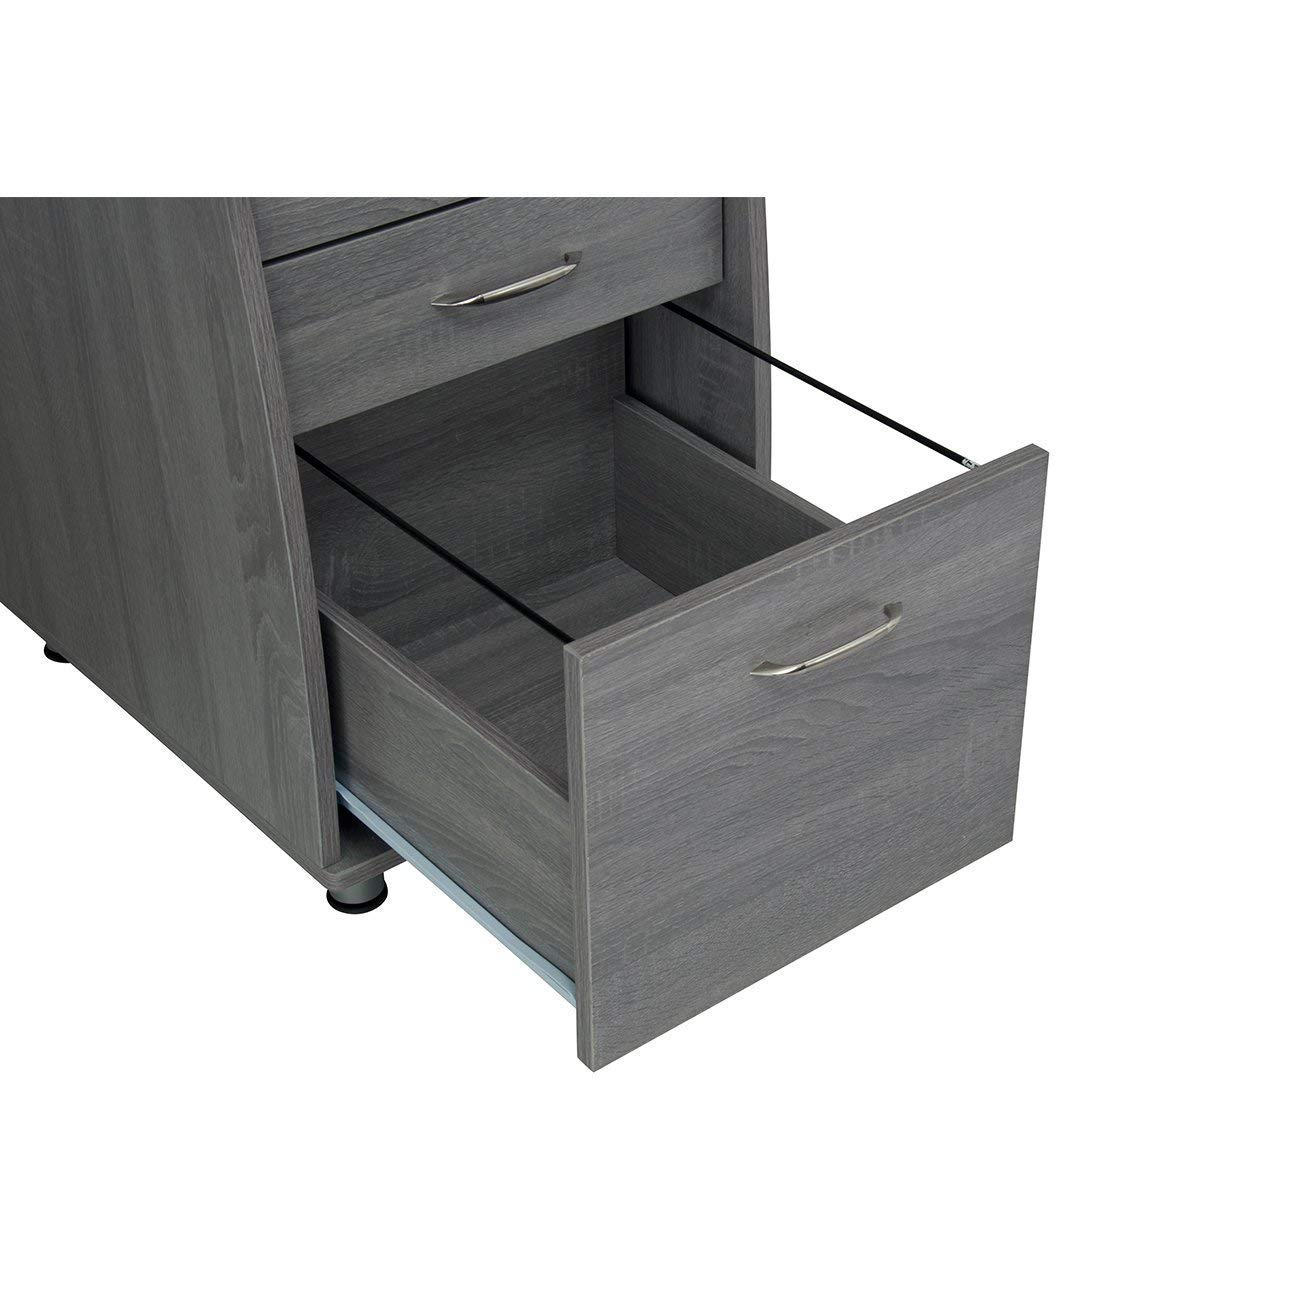 MyEasyShopping Modern Designs Grey MDF Multifunctional Office Desk With File Cabinet Storage U Mobile Lateral Executive Filing